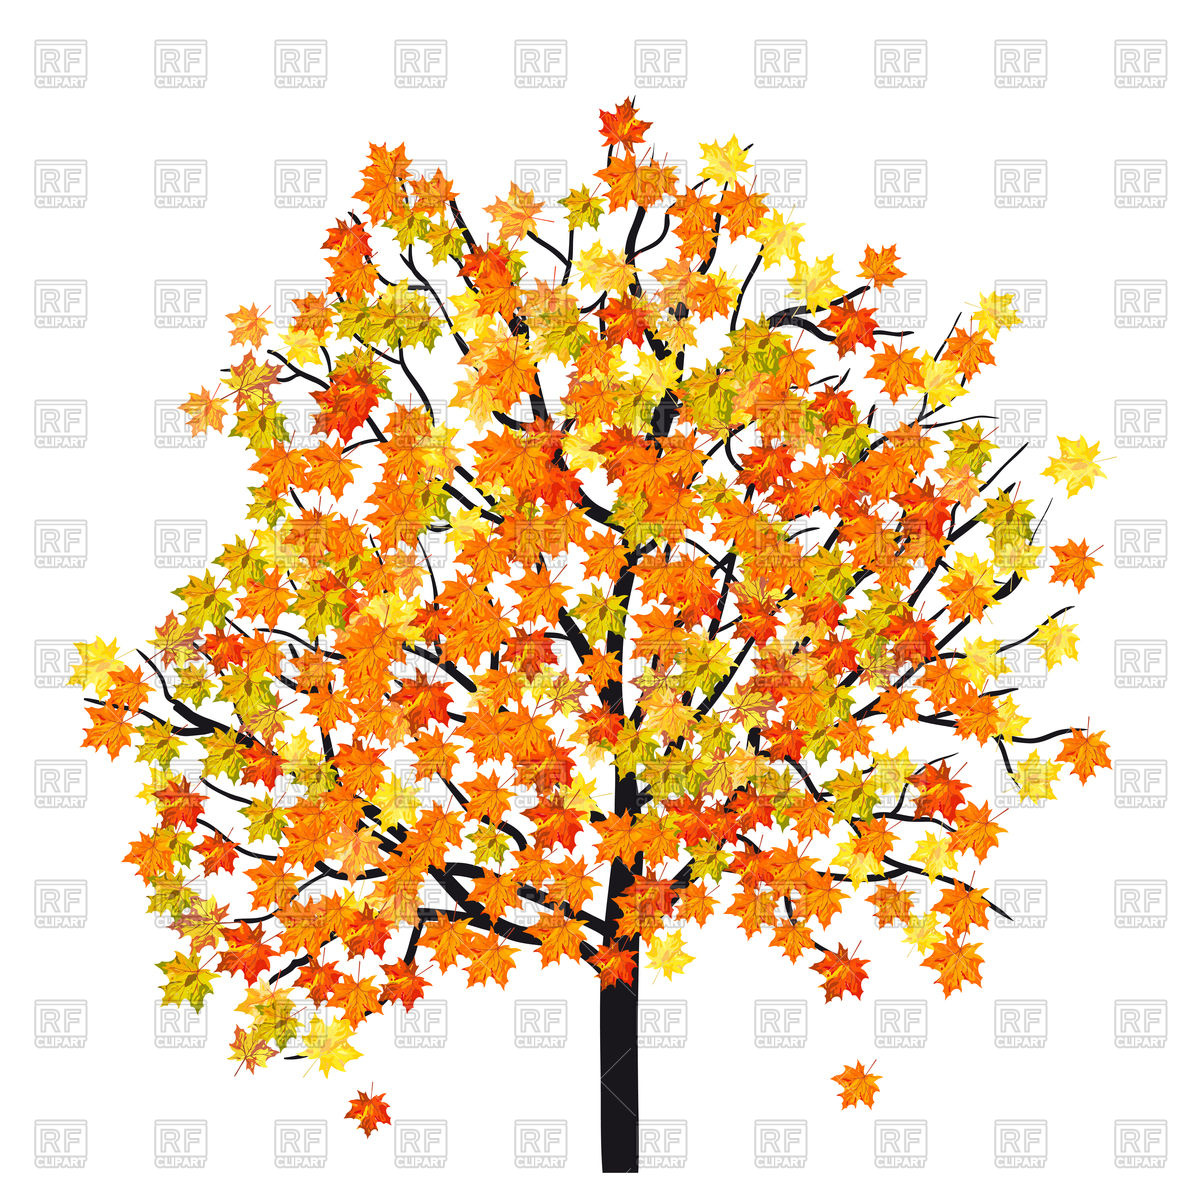 Autumn maple tree Vector Image #108025.